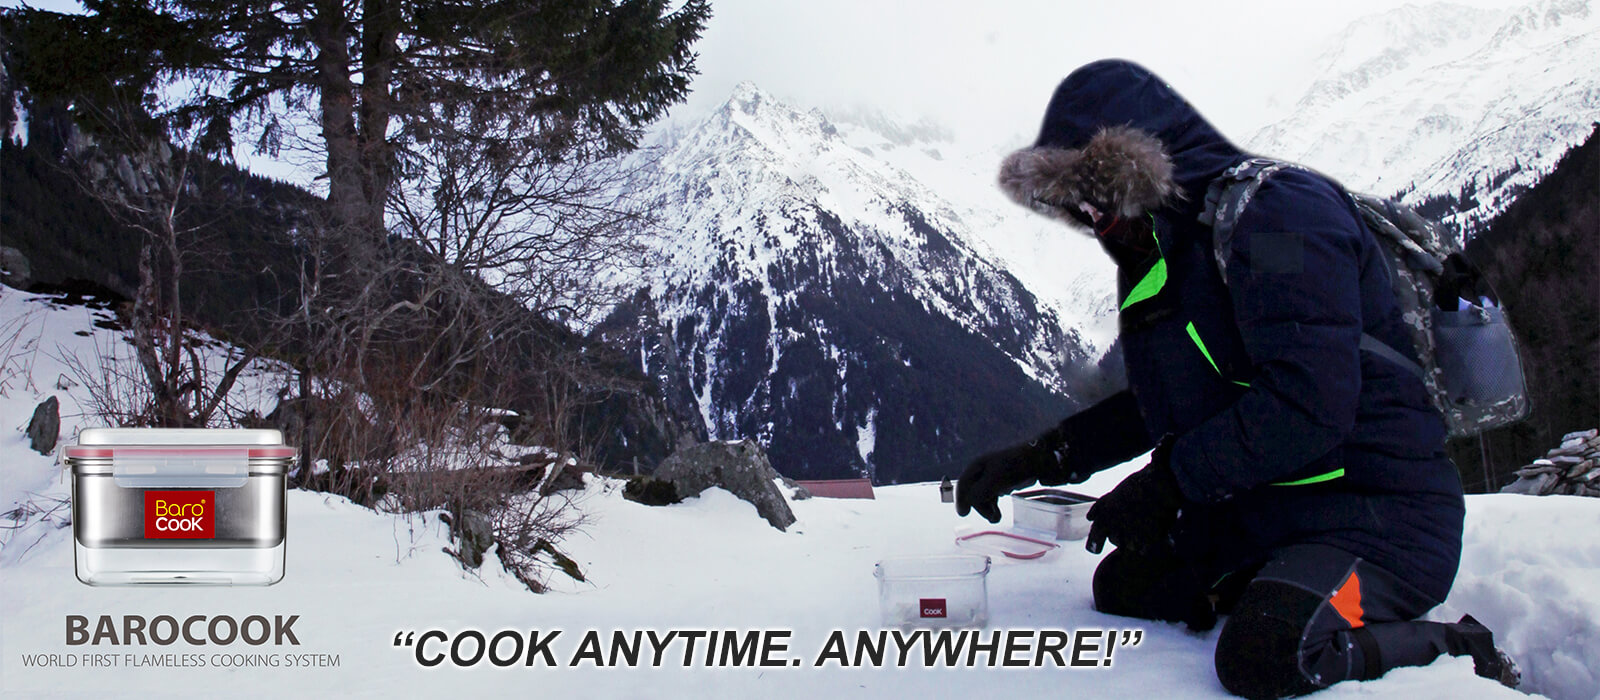 Barocook - Cook anytime, anywhere. Snow and Mountains.